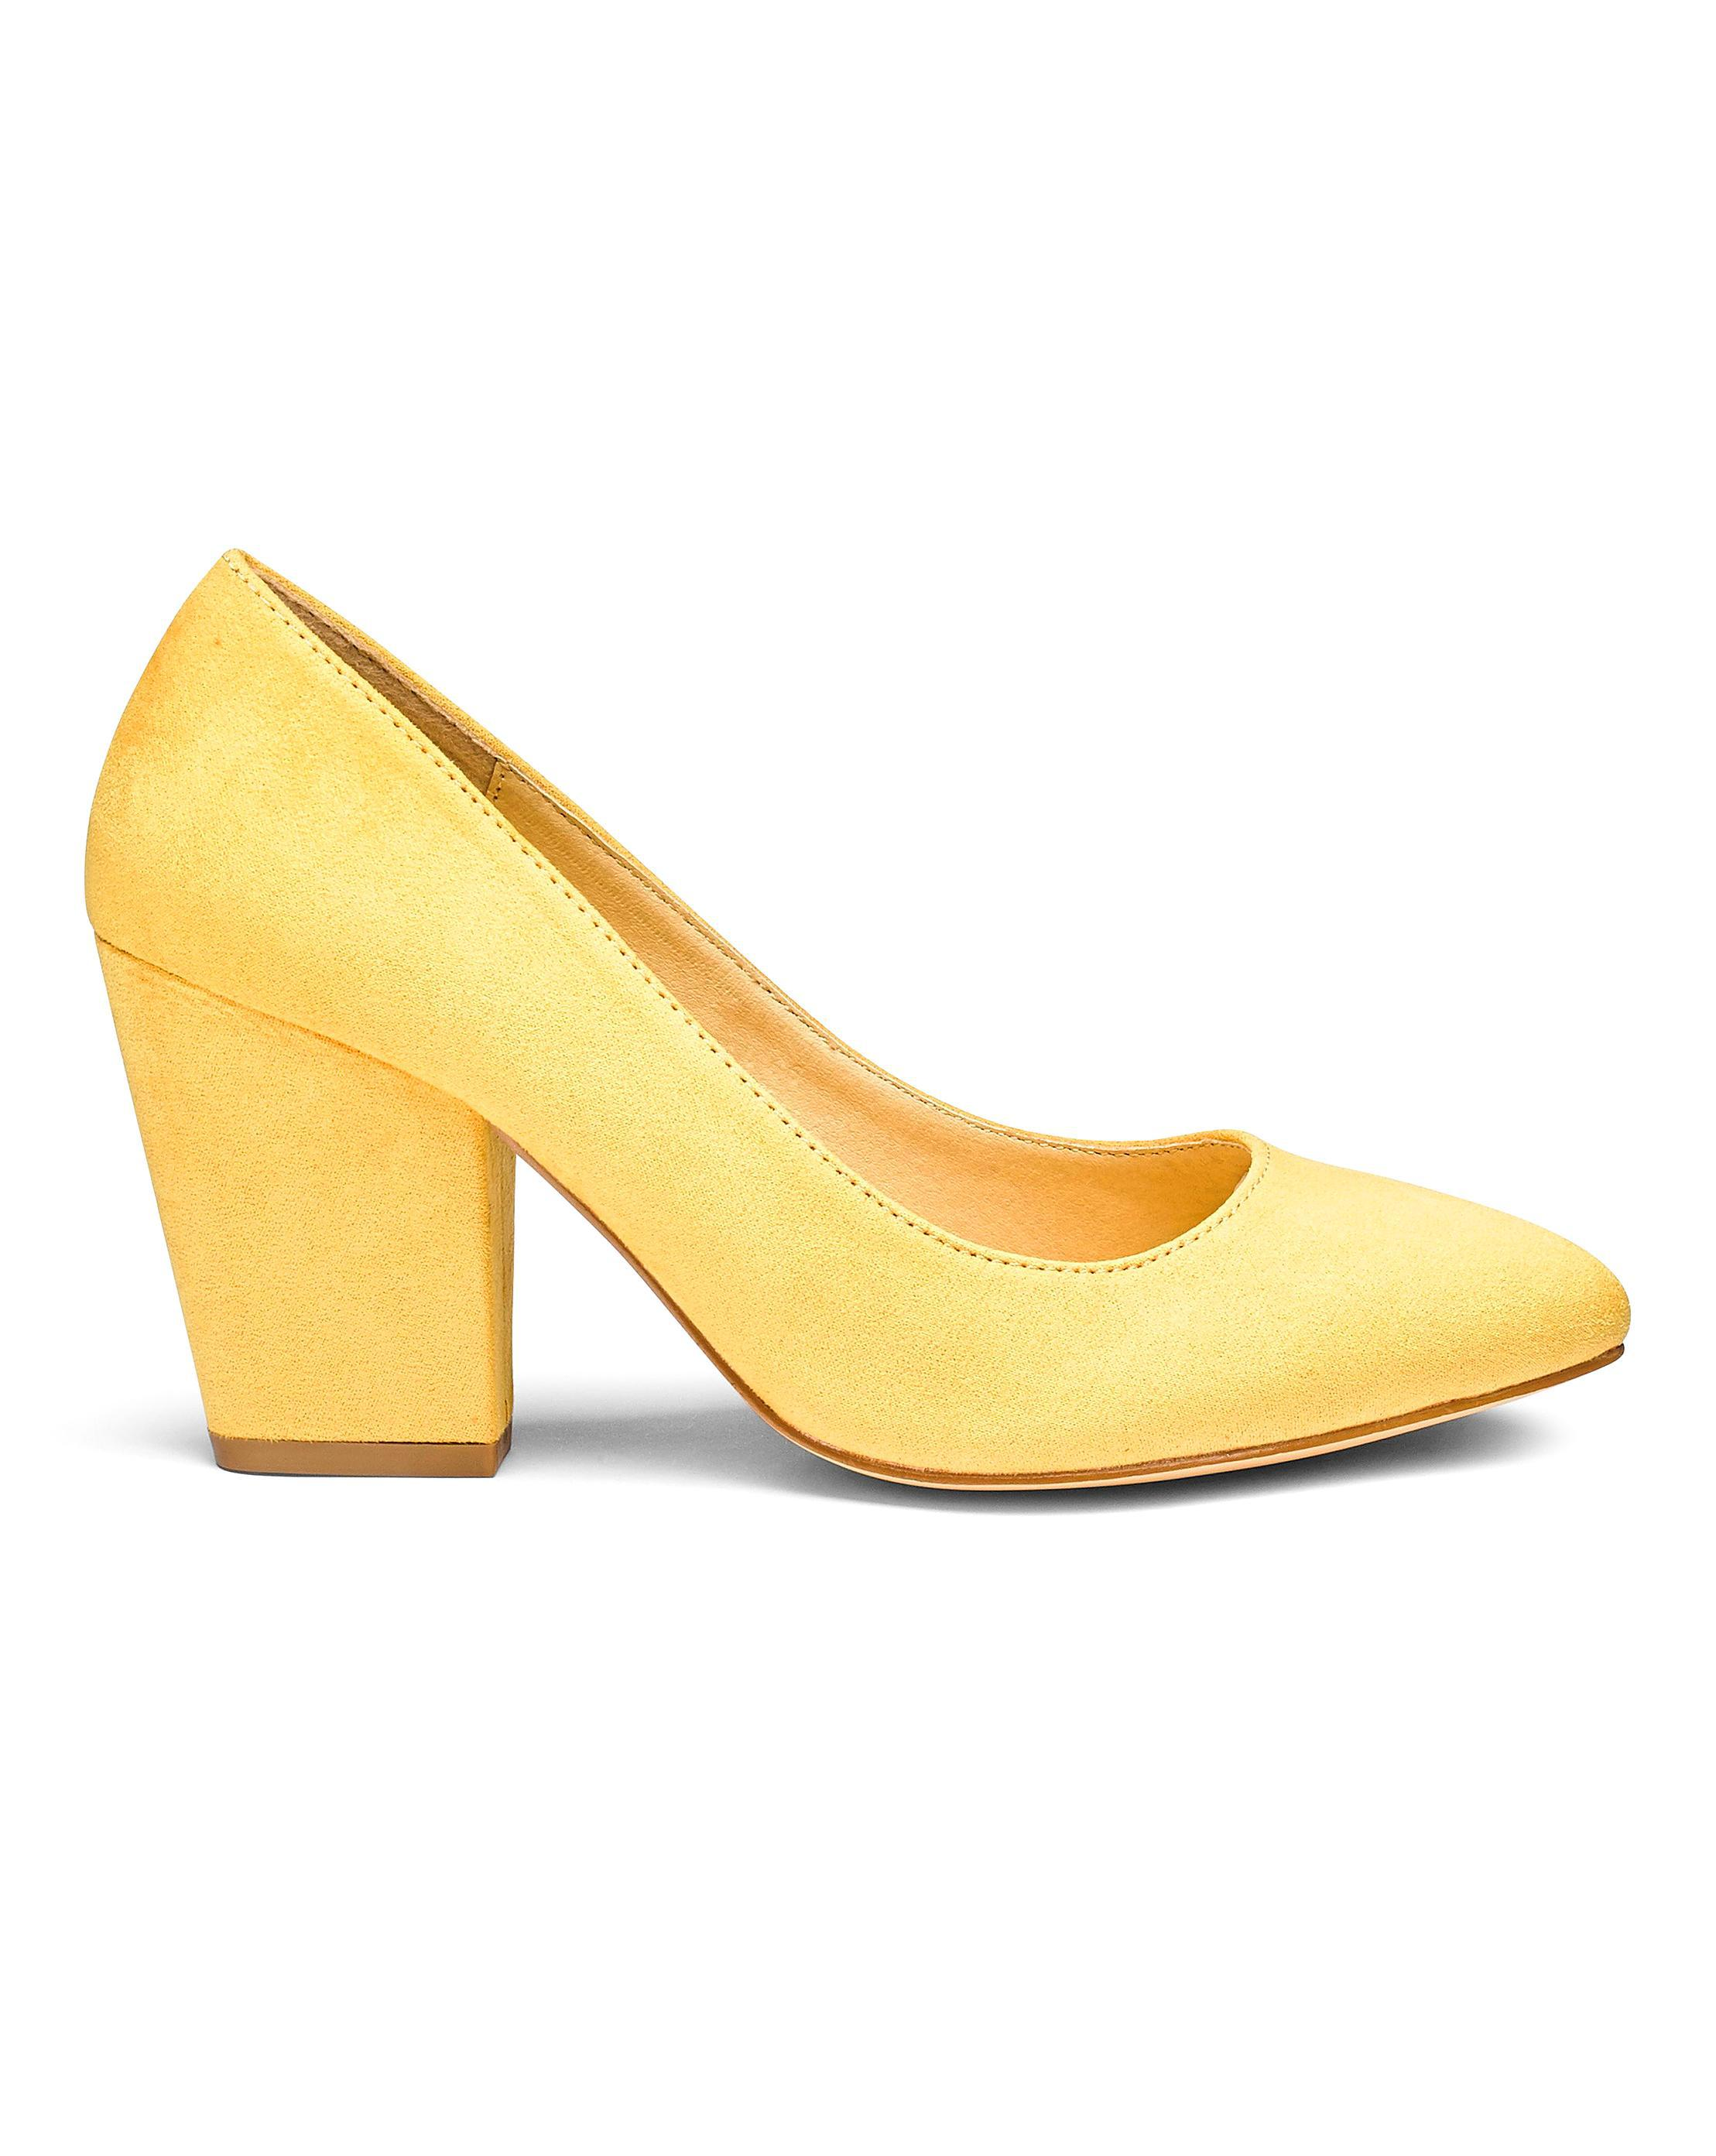 3796fc17f73 Lyst - Simply Be Block Heel Pumps in Yellow